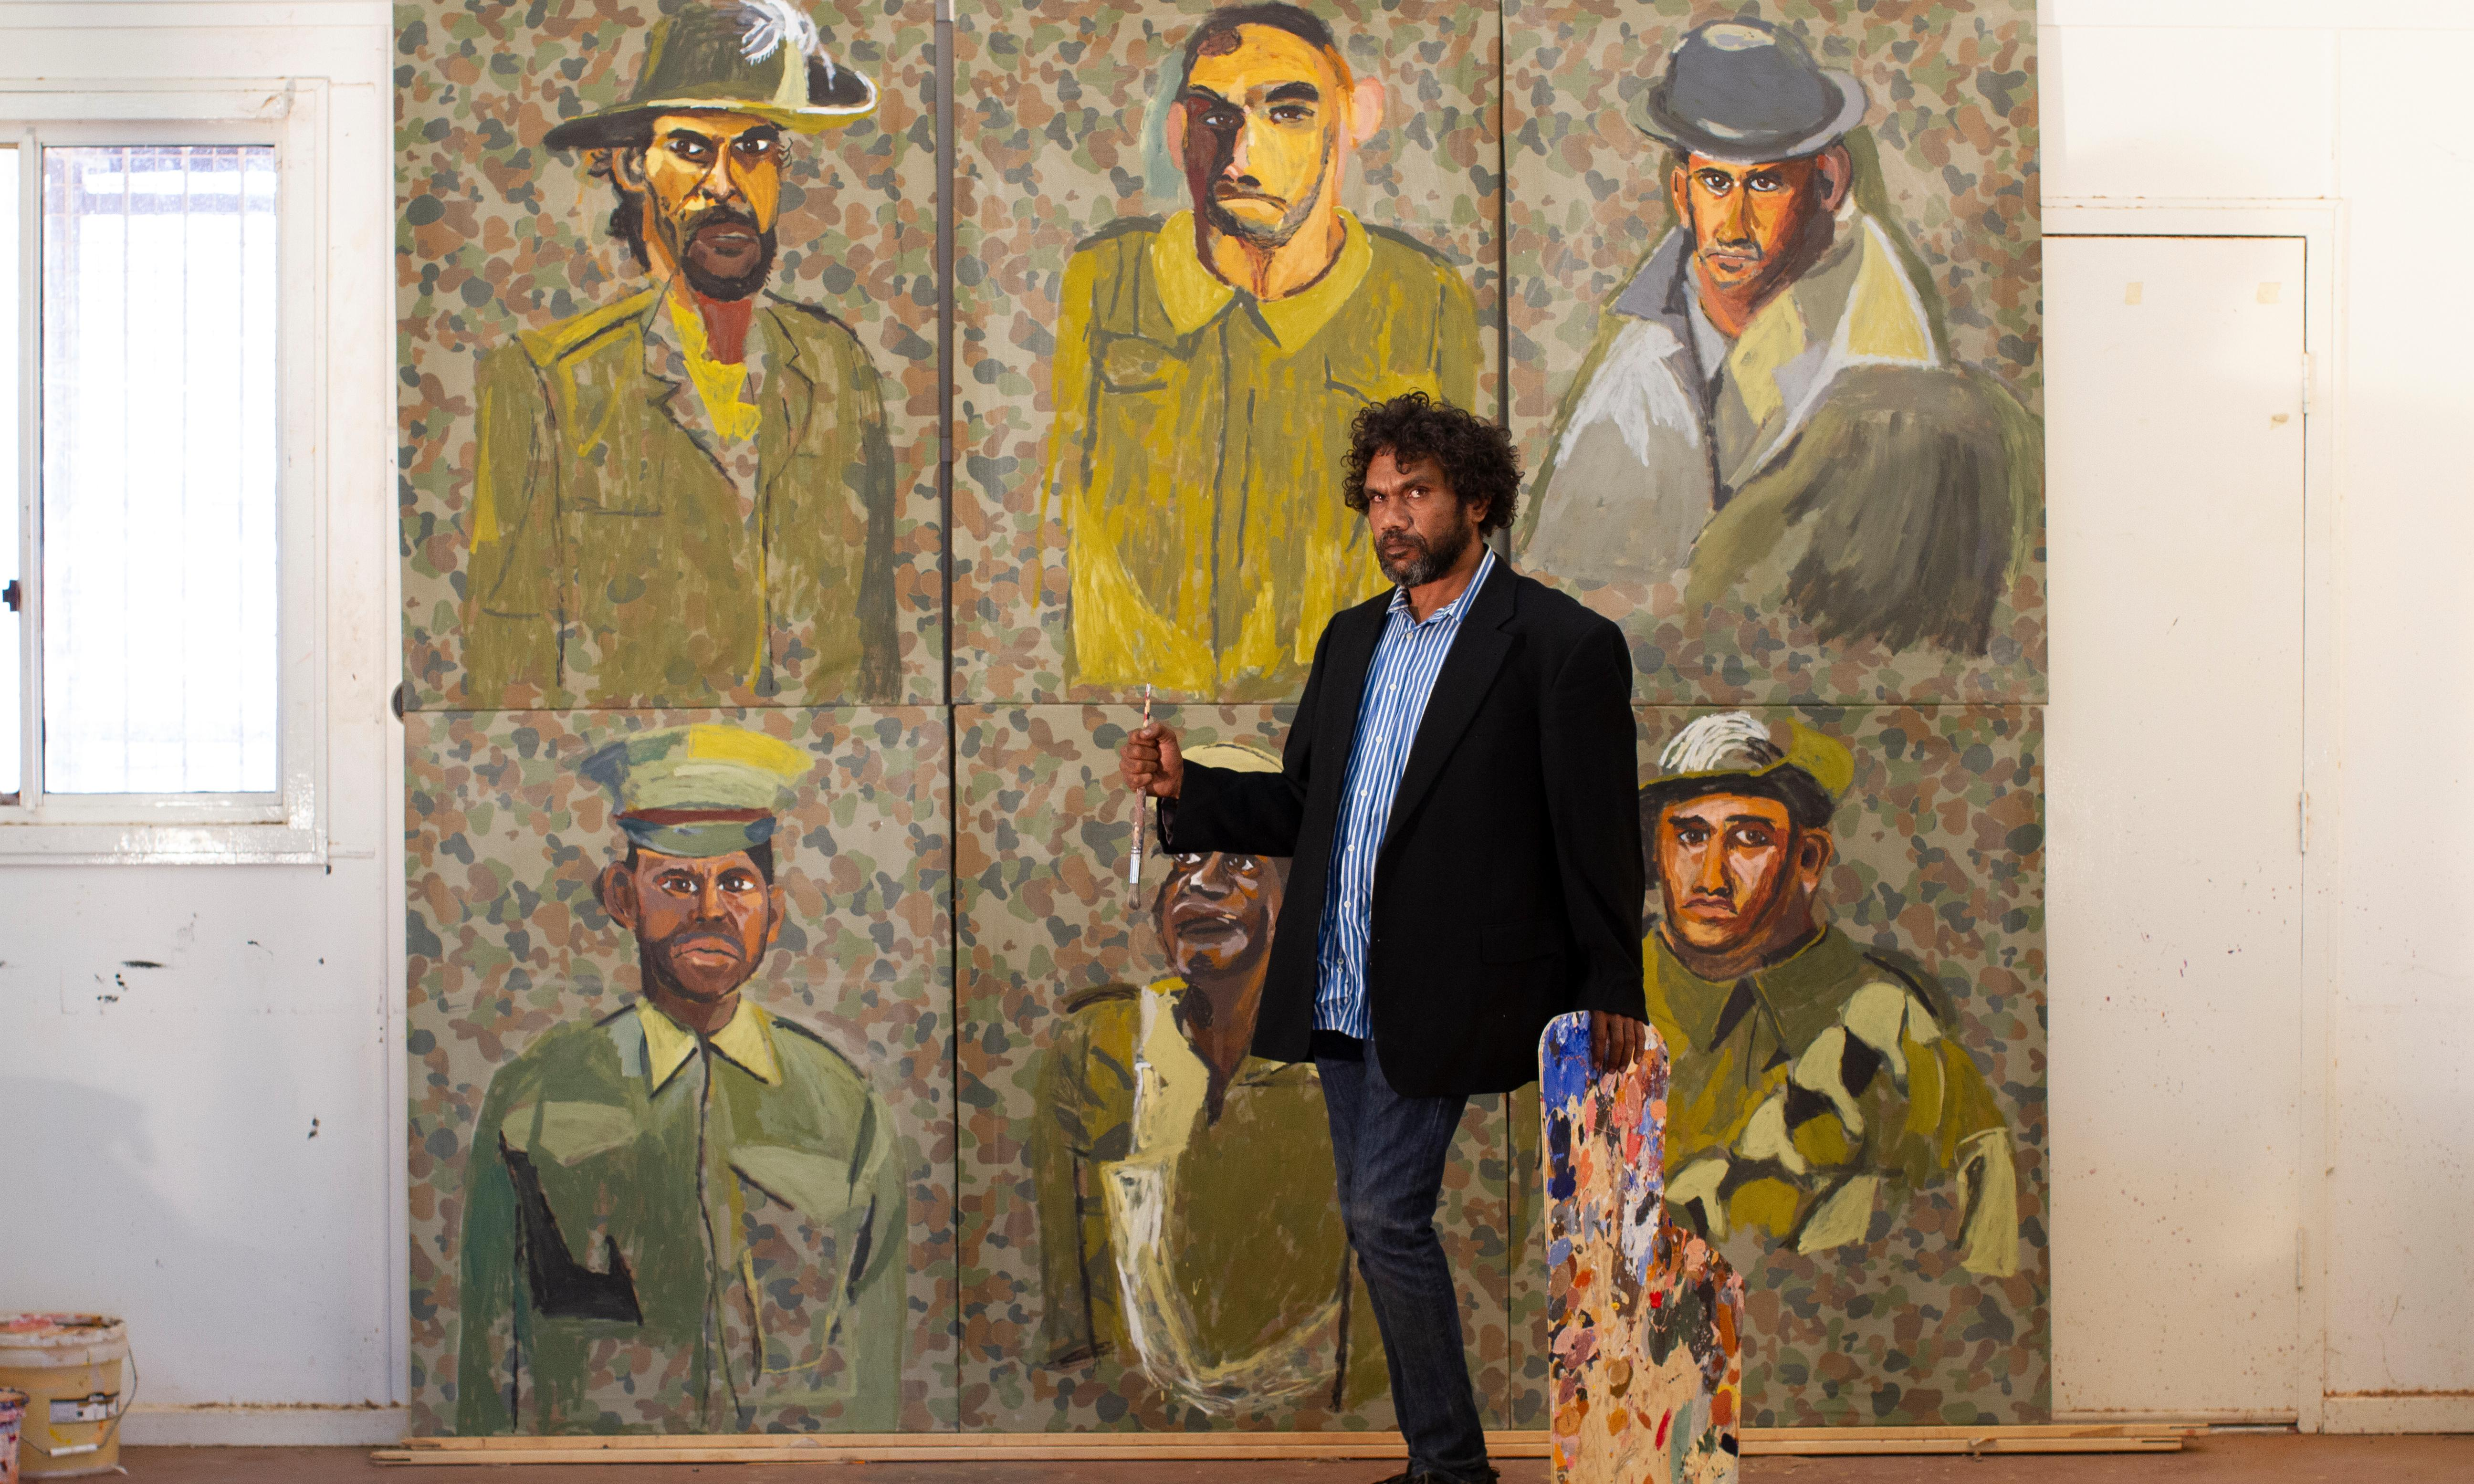 'Youngfellas': artists come to grips with legacy of Indigenous servicemen